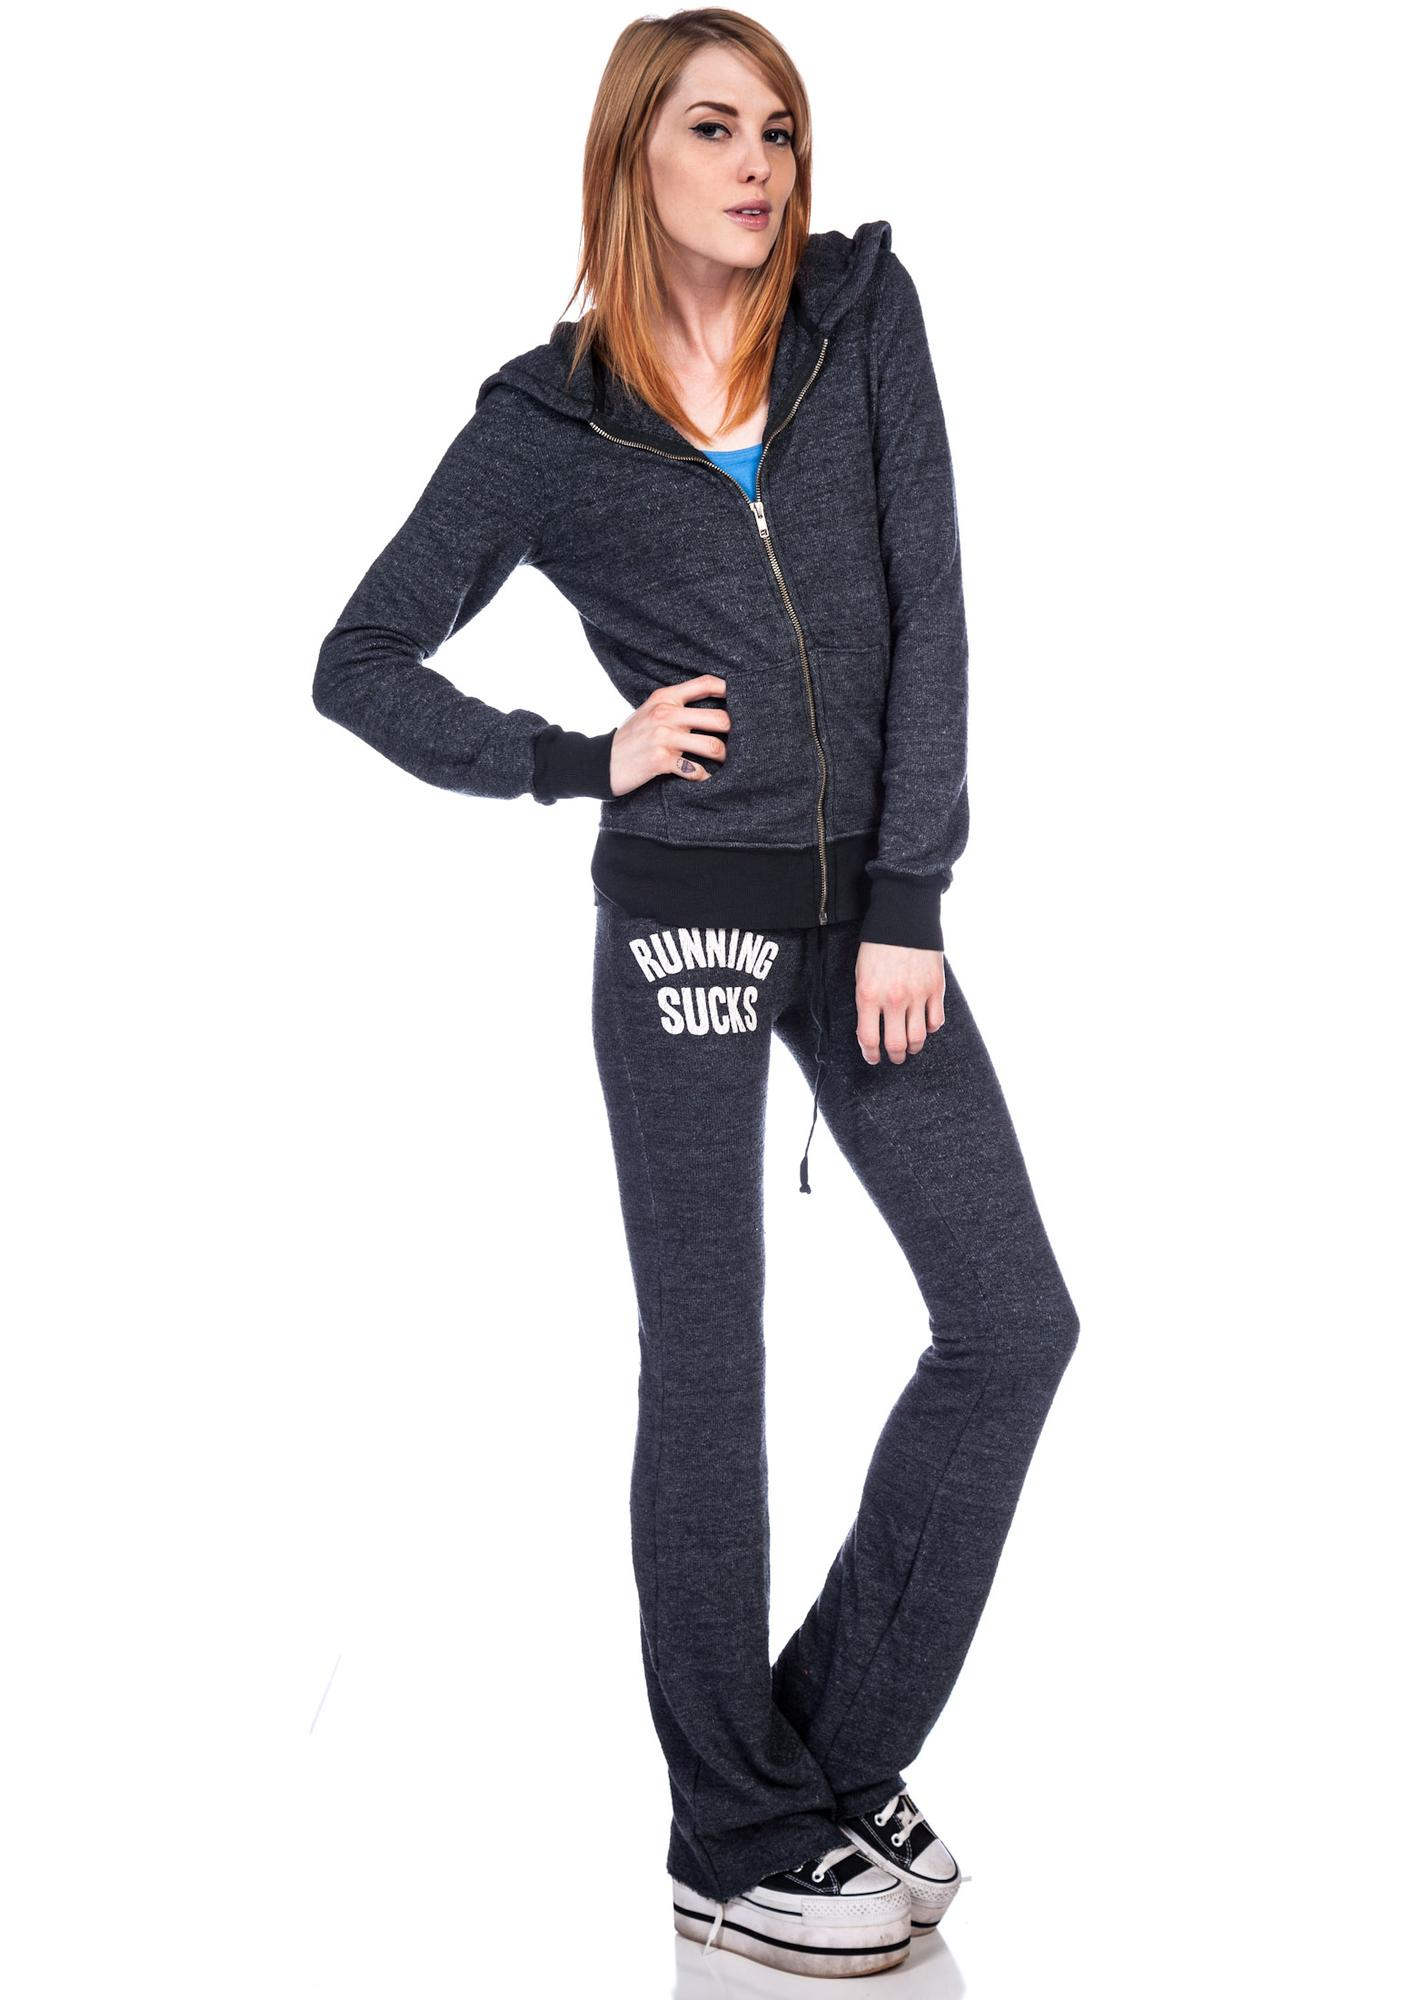 Wildfox Couture Running Sucks Wildfox Track Suit Jacket